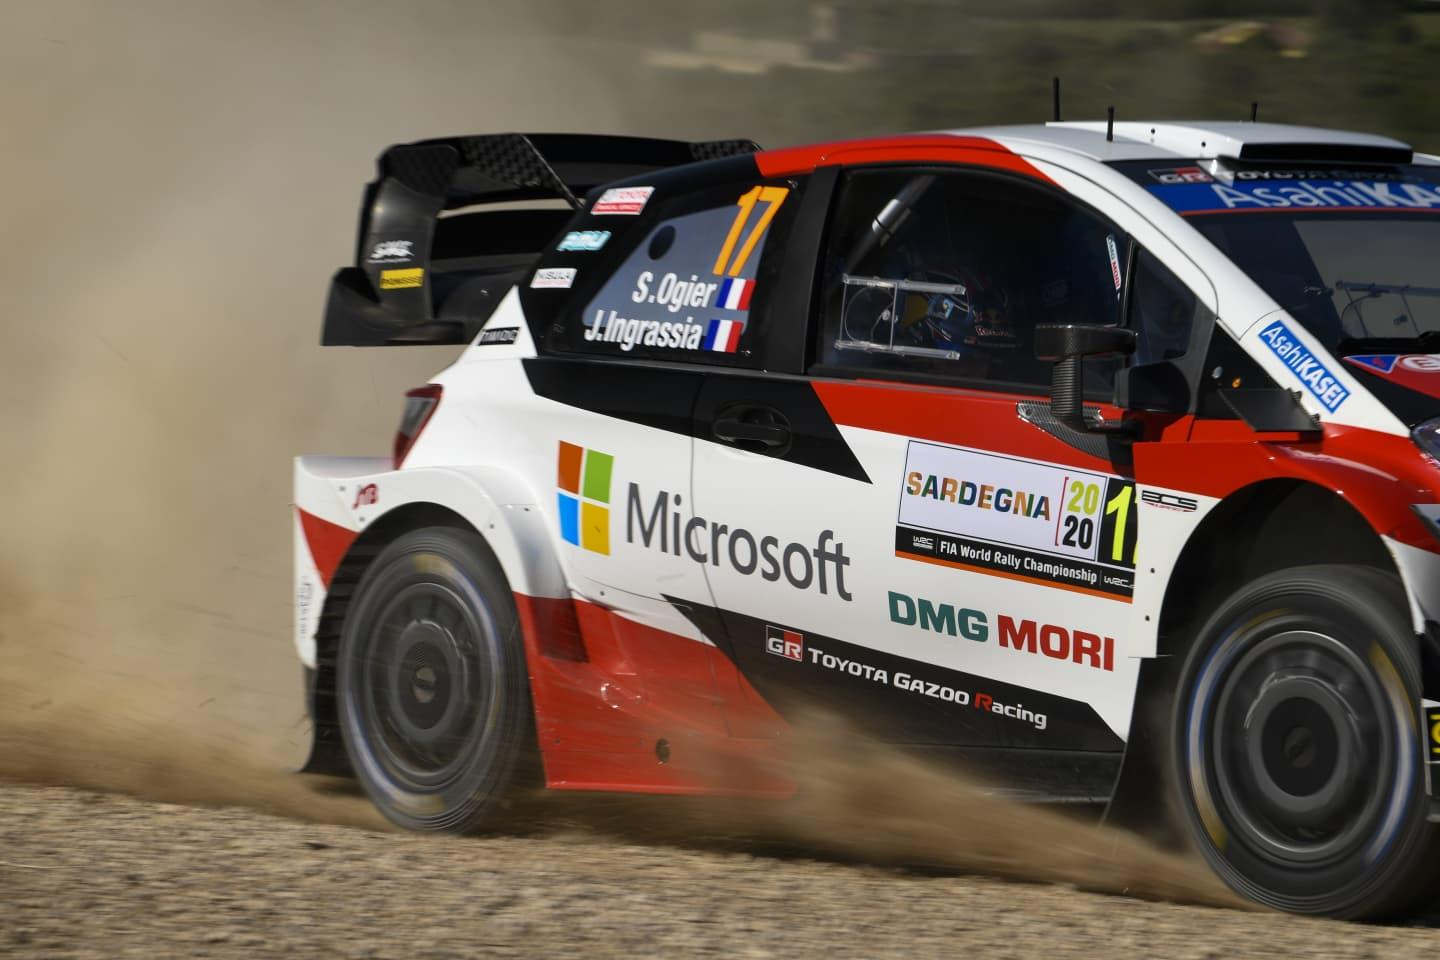 rally-cerdena-bucle-1-2020-wrc-3